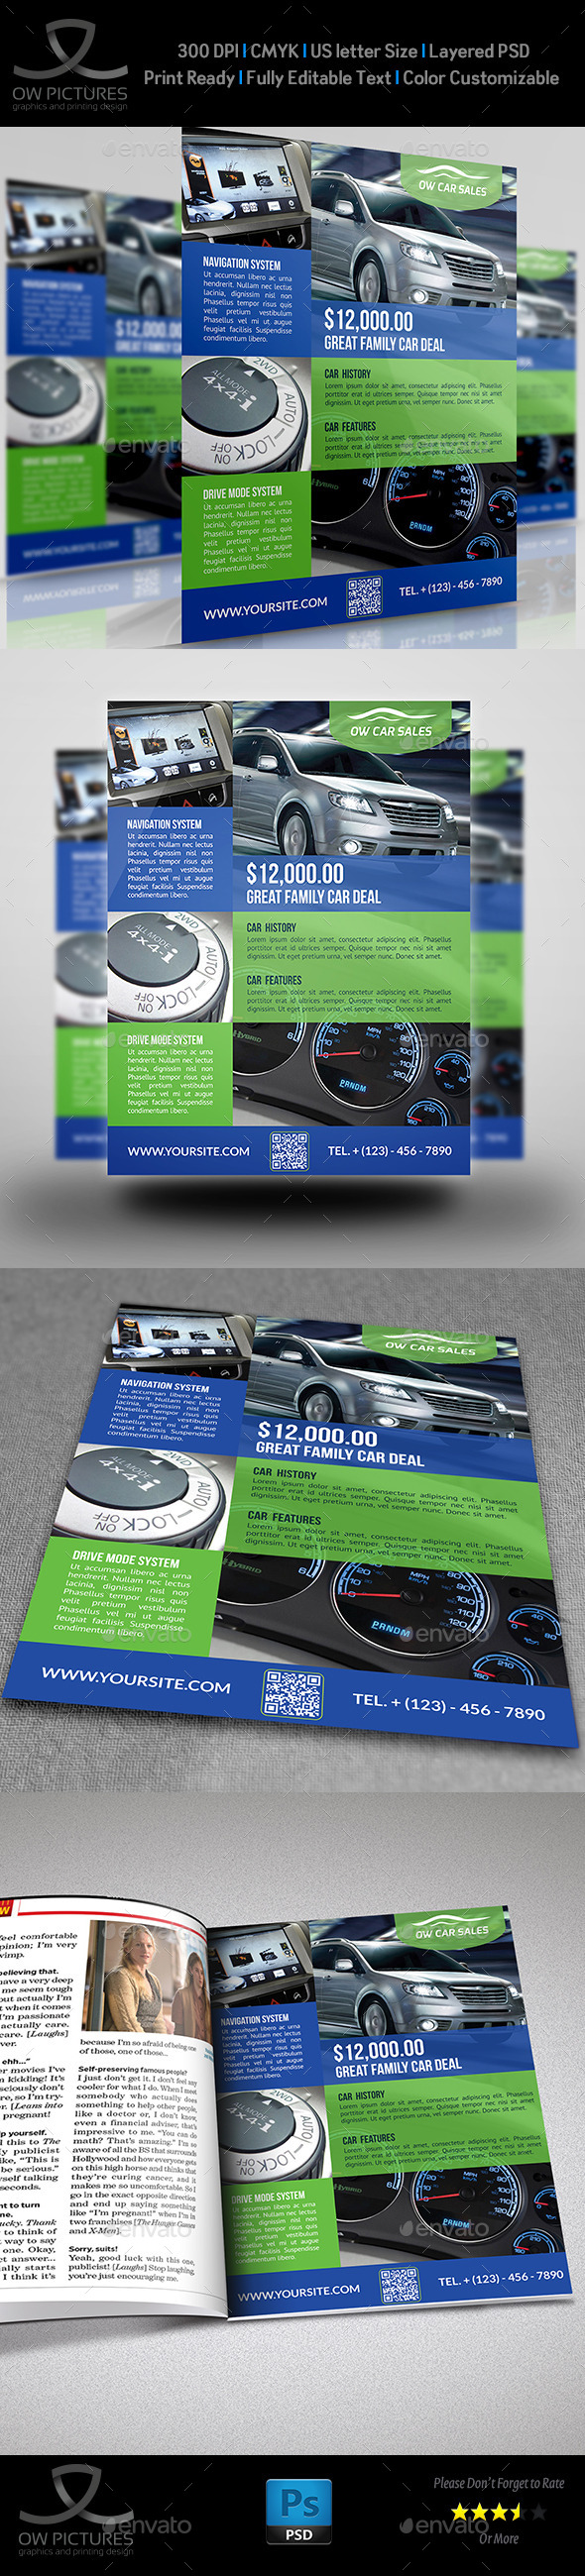 GraphicRiver Car for Sale Flyer Template Vo.2 11890113